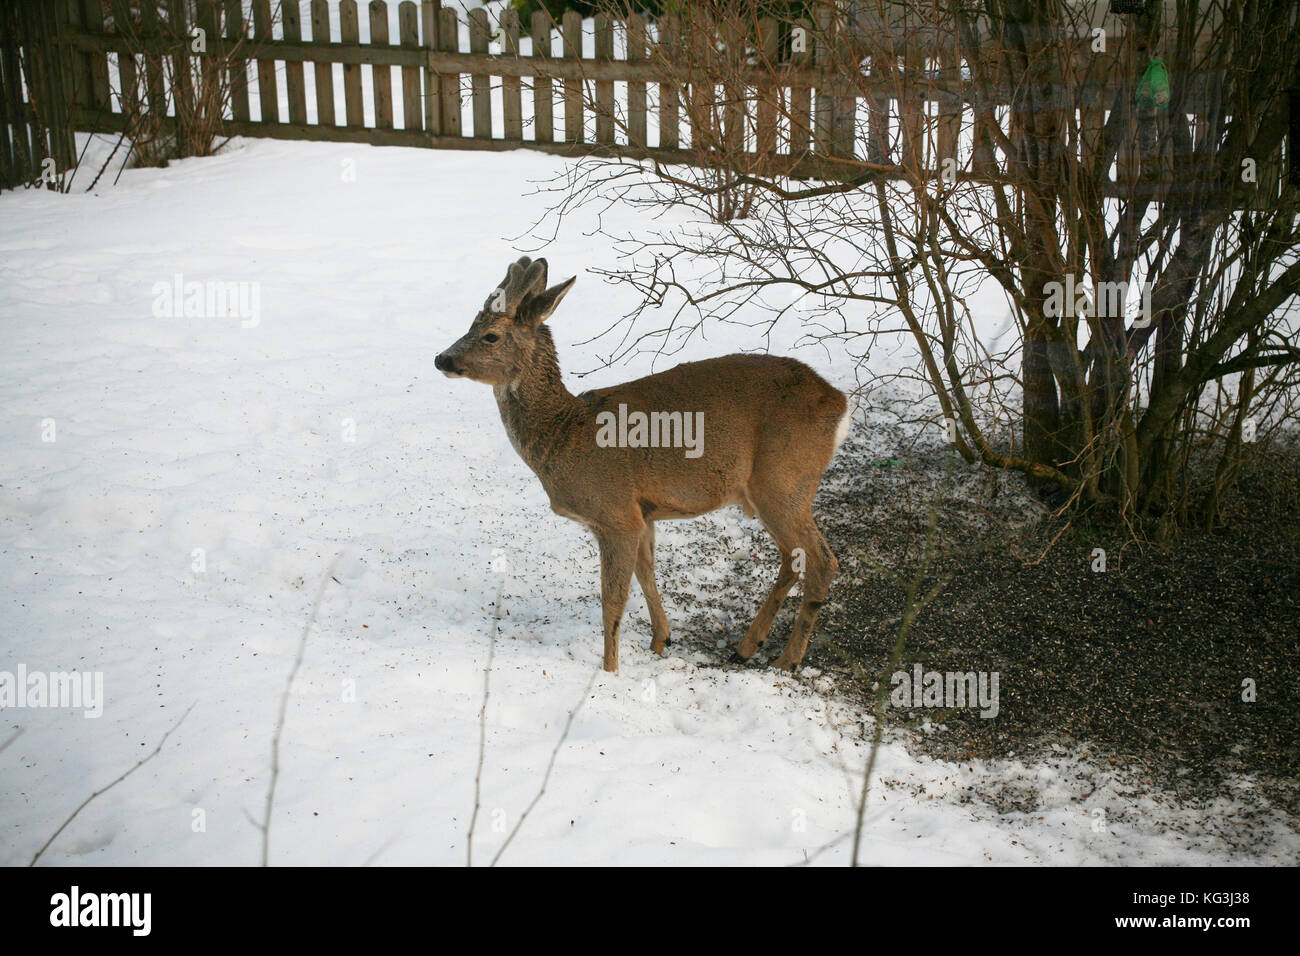 ROE DEER in the villa garden seeks food during bird feed 2013 - Stock Image